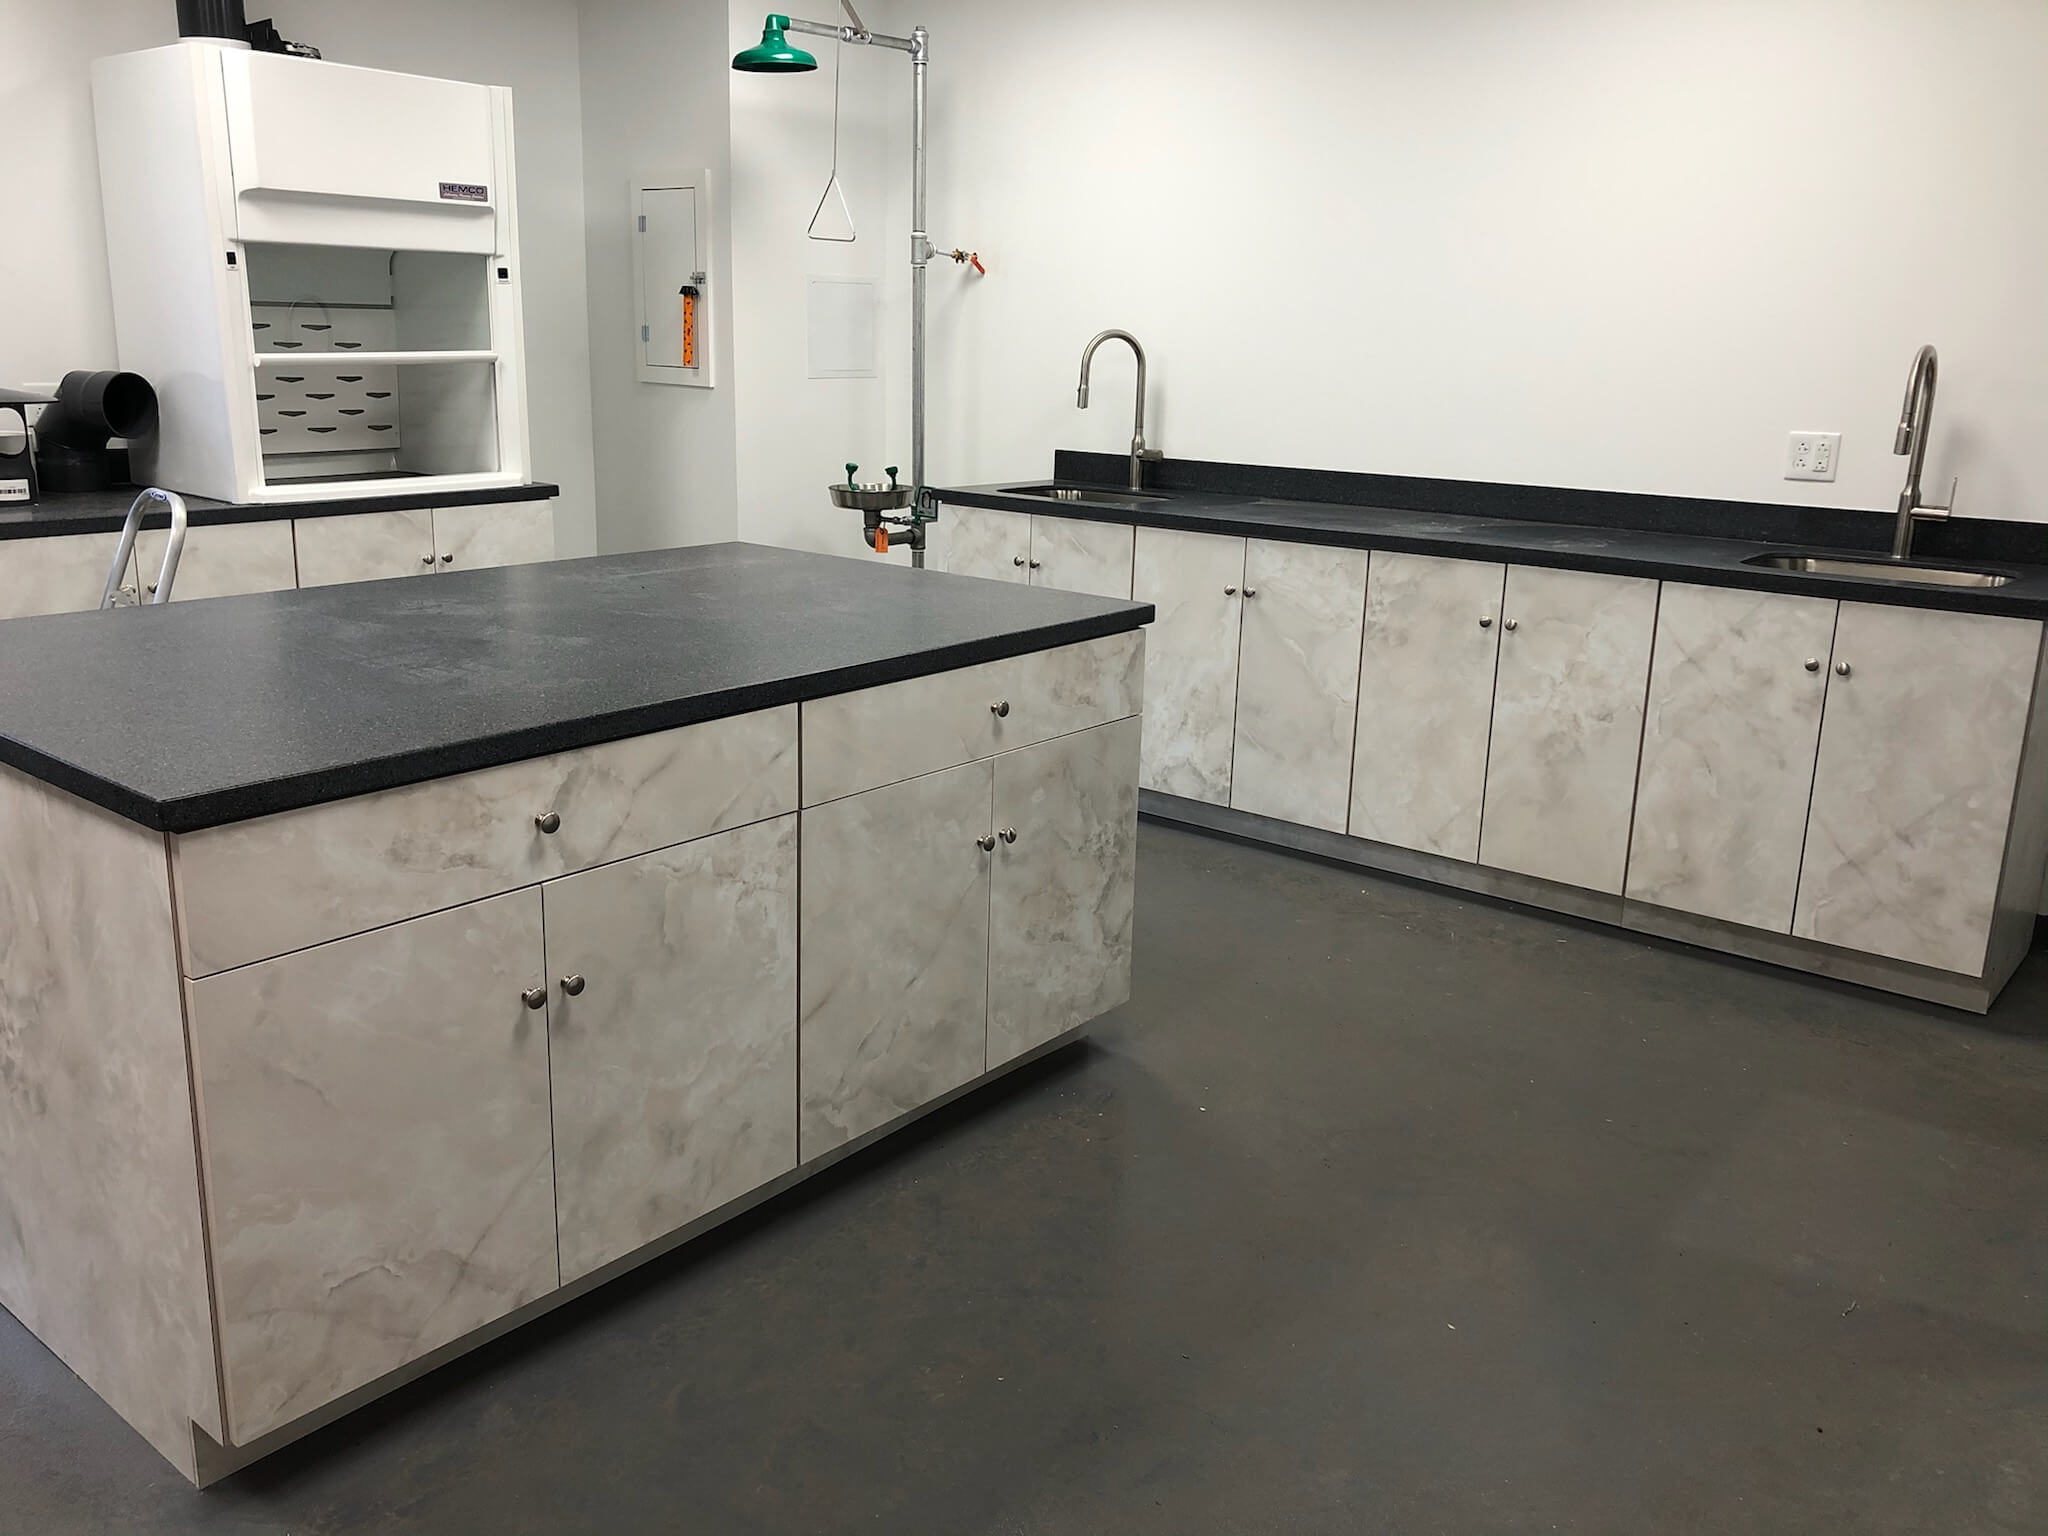 Langhorne Kitchen Design Cmi Cabinets And Countertops